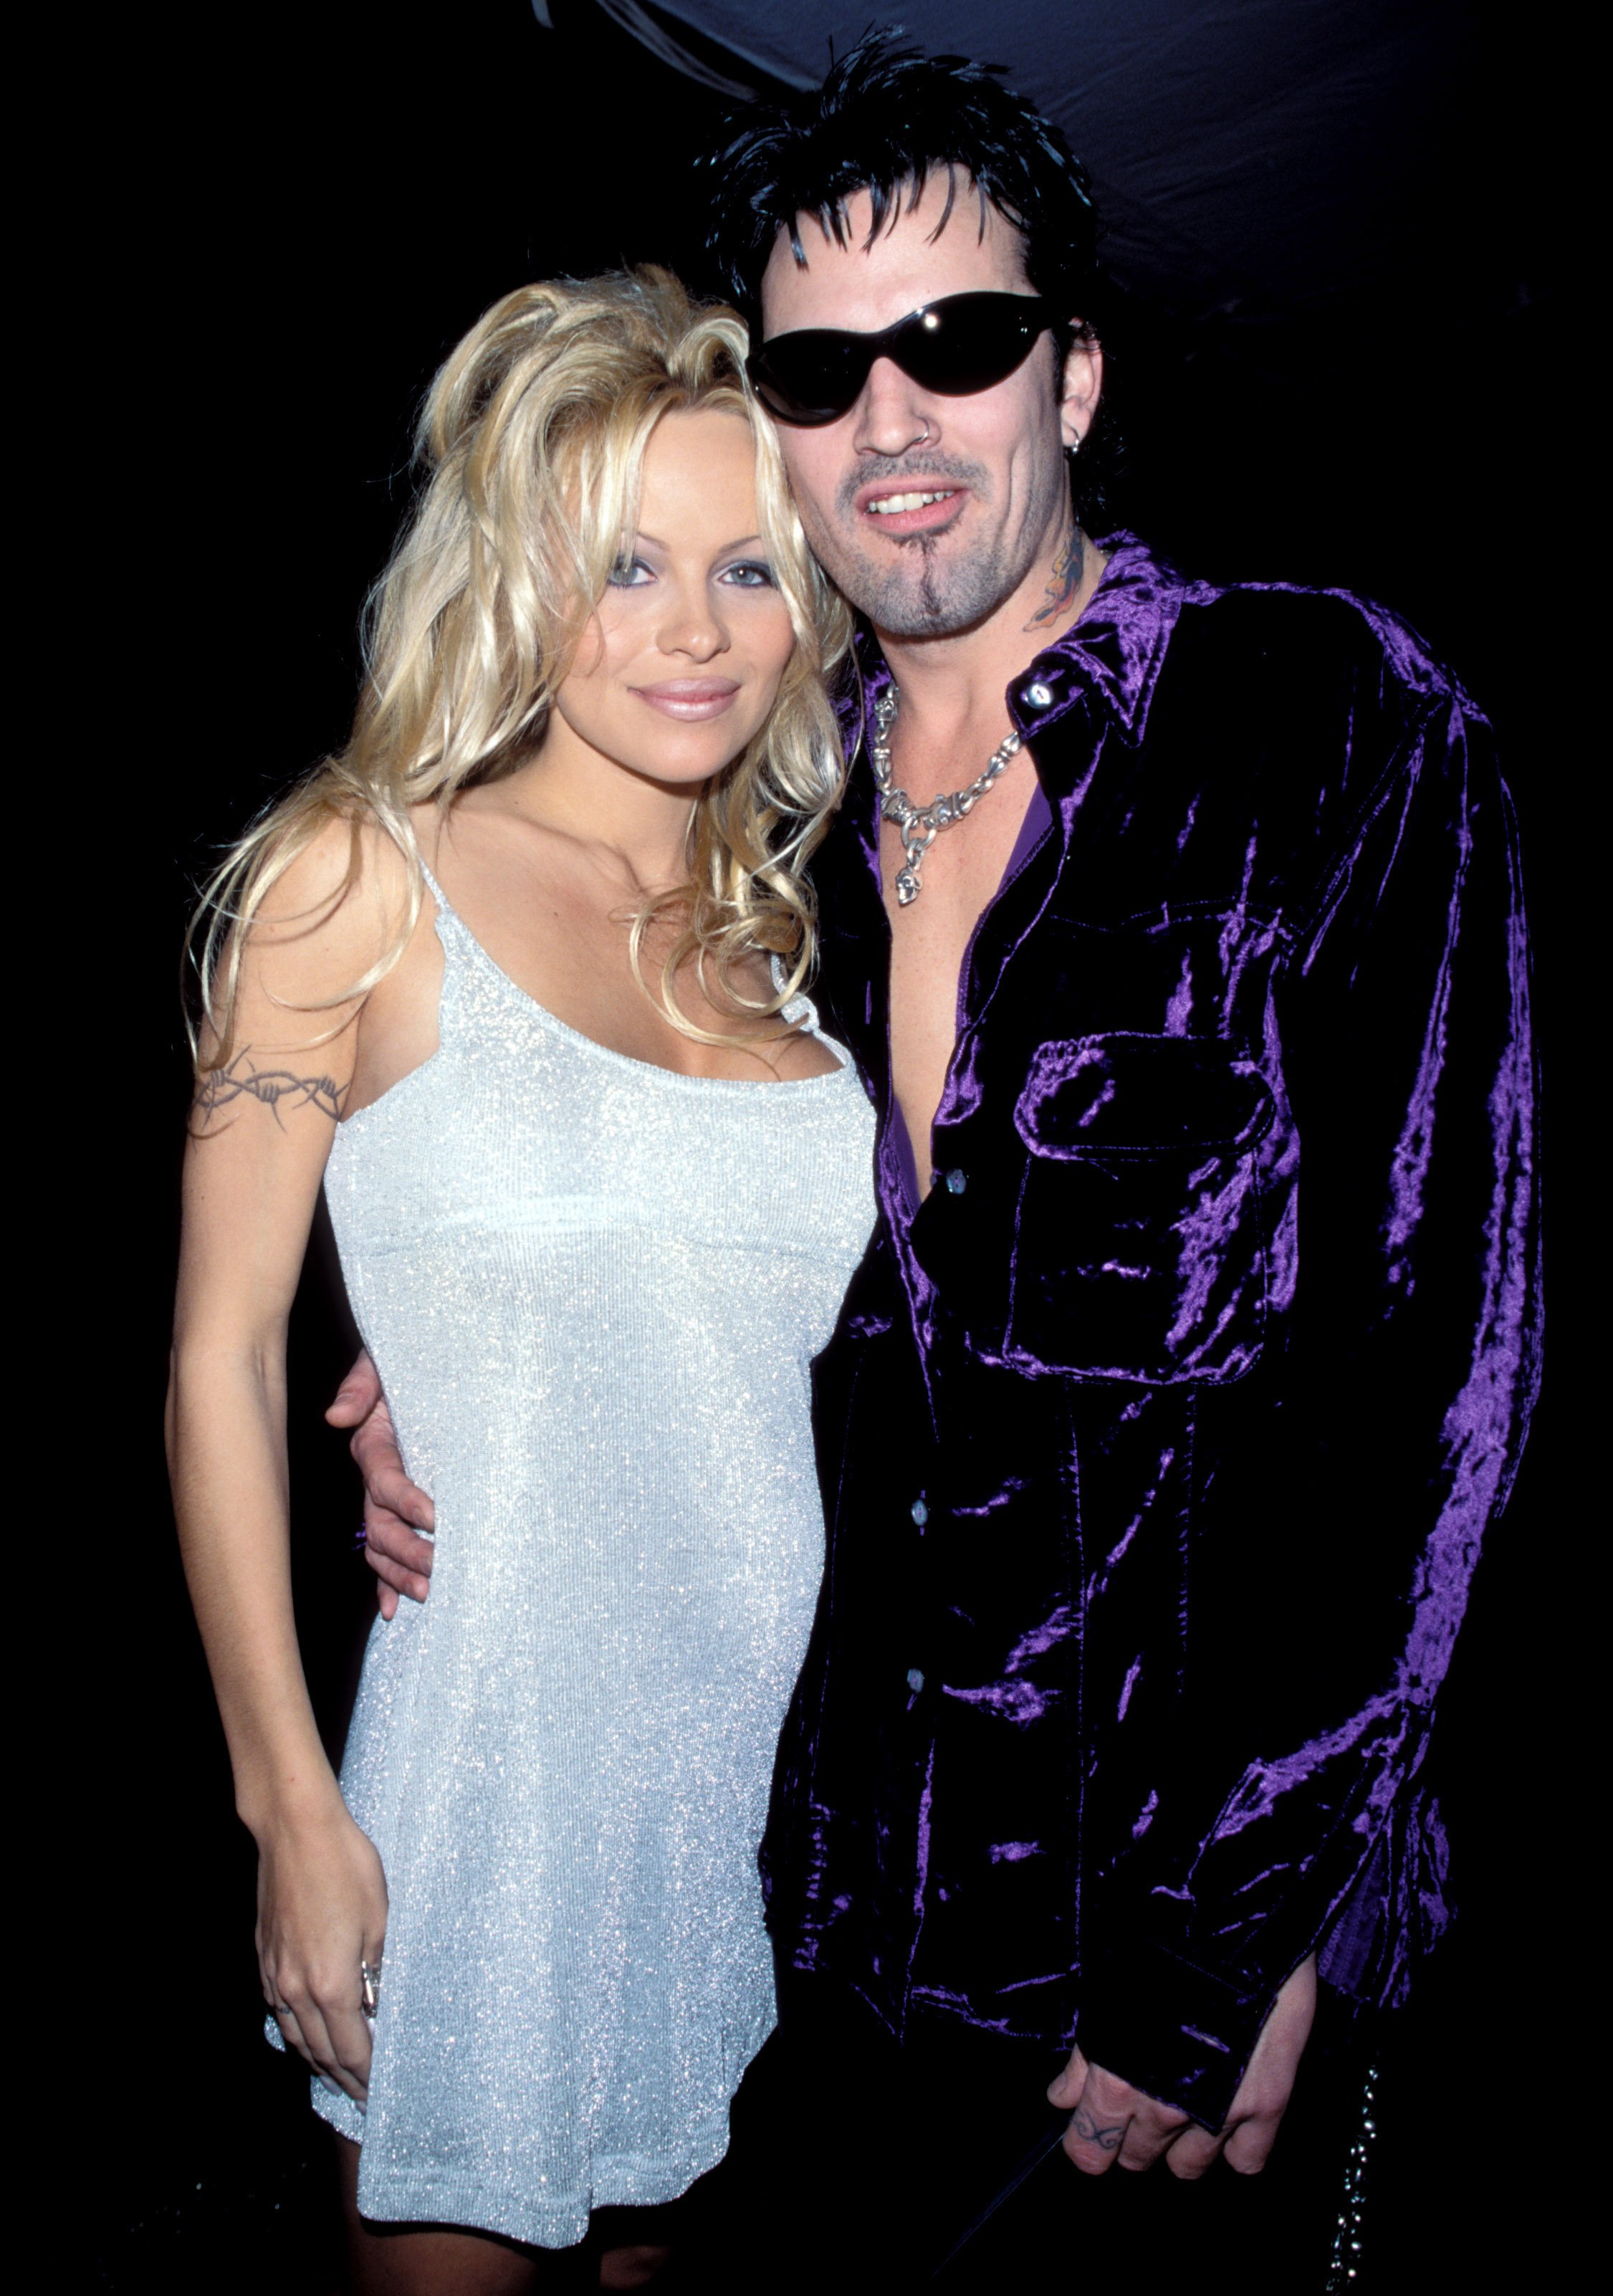 Pamela Anderson and Tommy Lee at the American Music Awards, 1996 | Photo by Kevin Mazur/WireImage/GettyImages